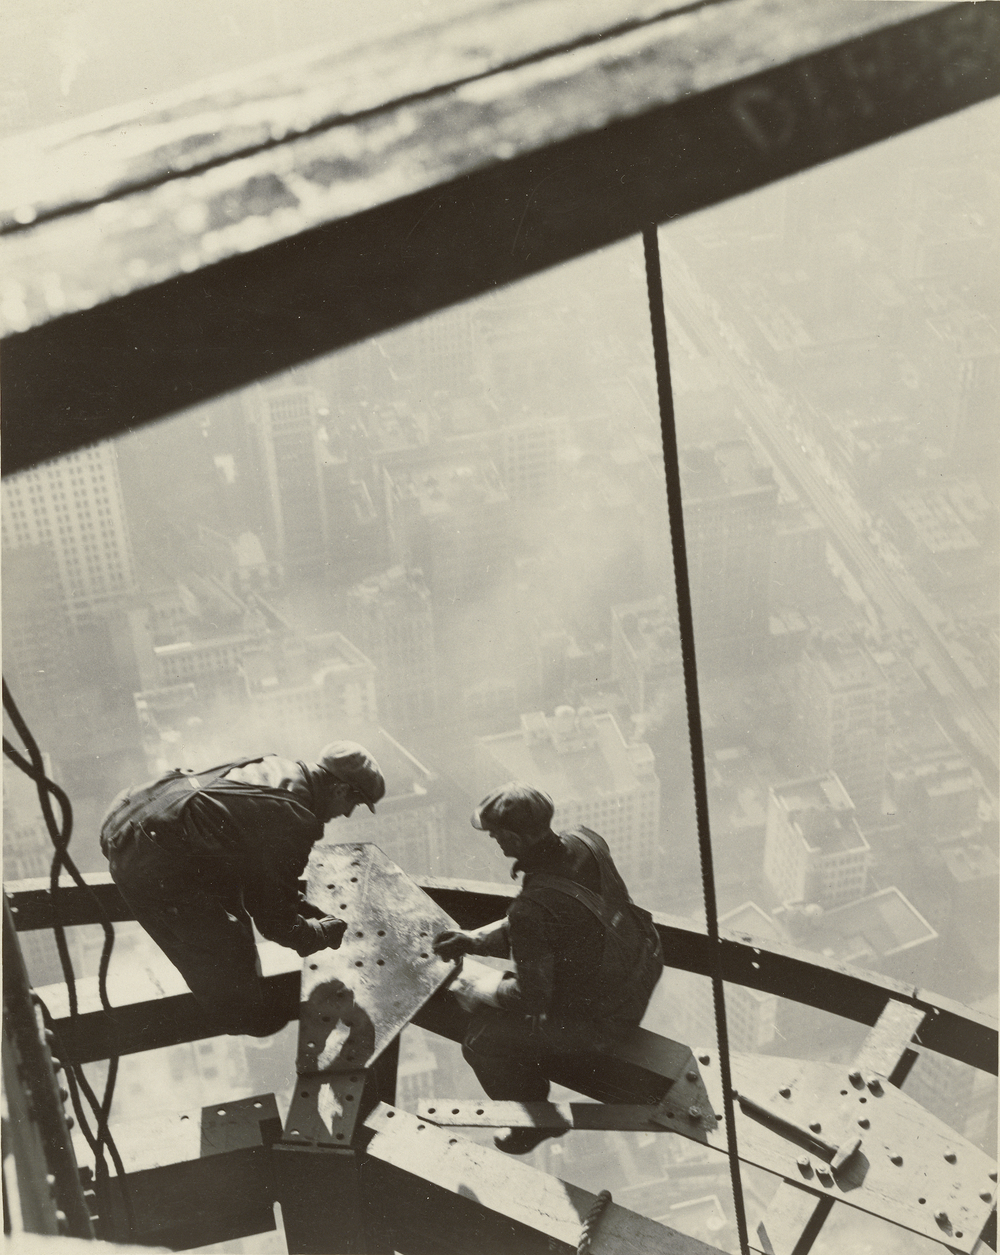 Lewis Hine, Empire State Building, 1931